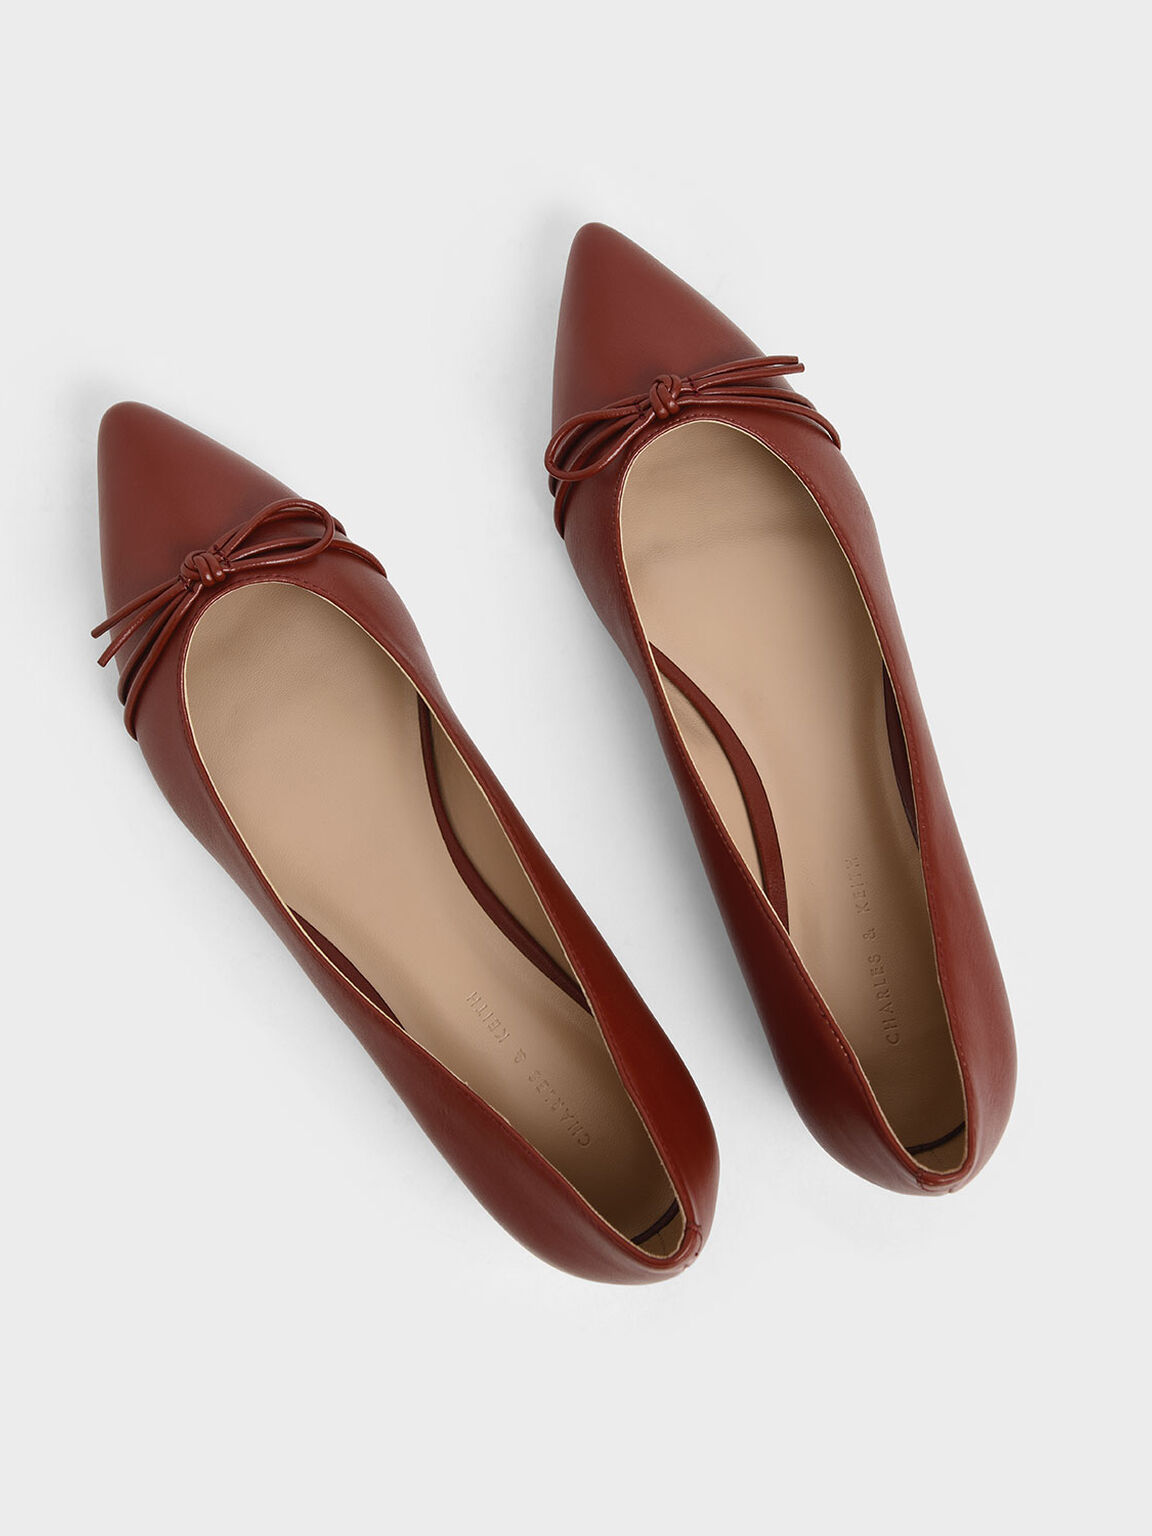 Ribbon Tie Ballerina Flats, Red, hi-res